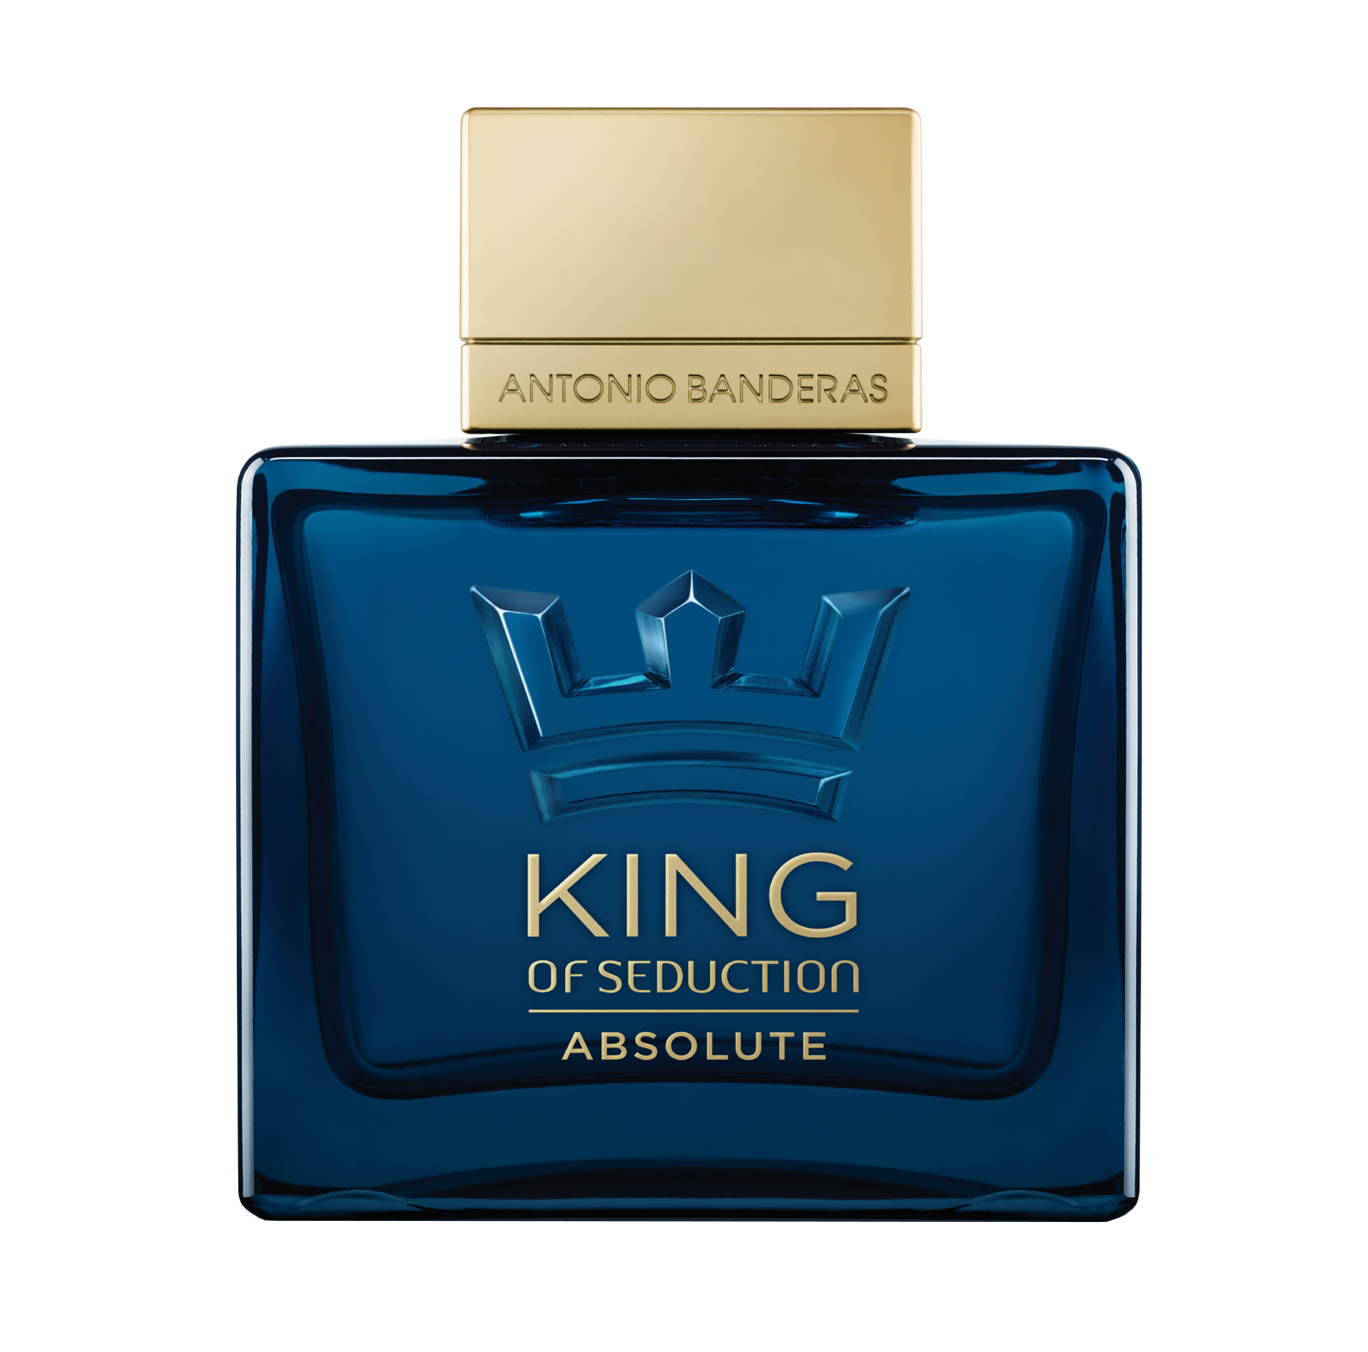 Perfume Antonio Banderas King Of Seduction Absolute Eau De Toilette Perfume 100 Ml